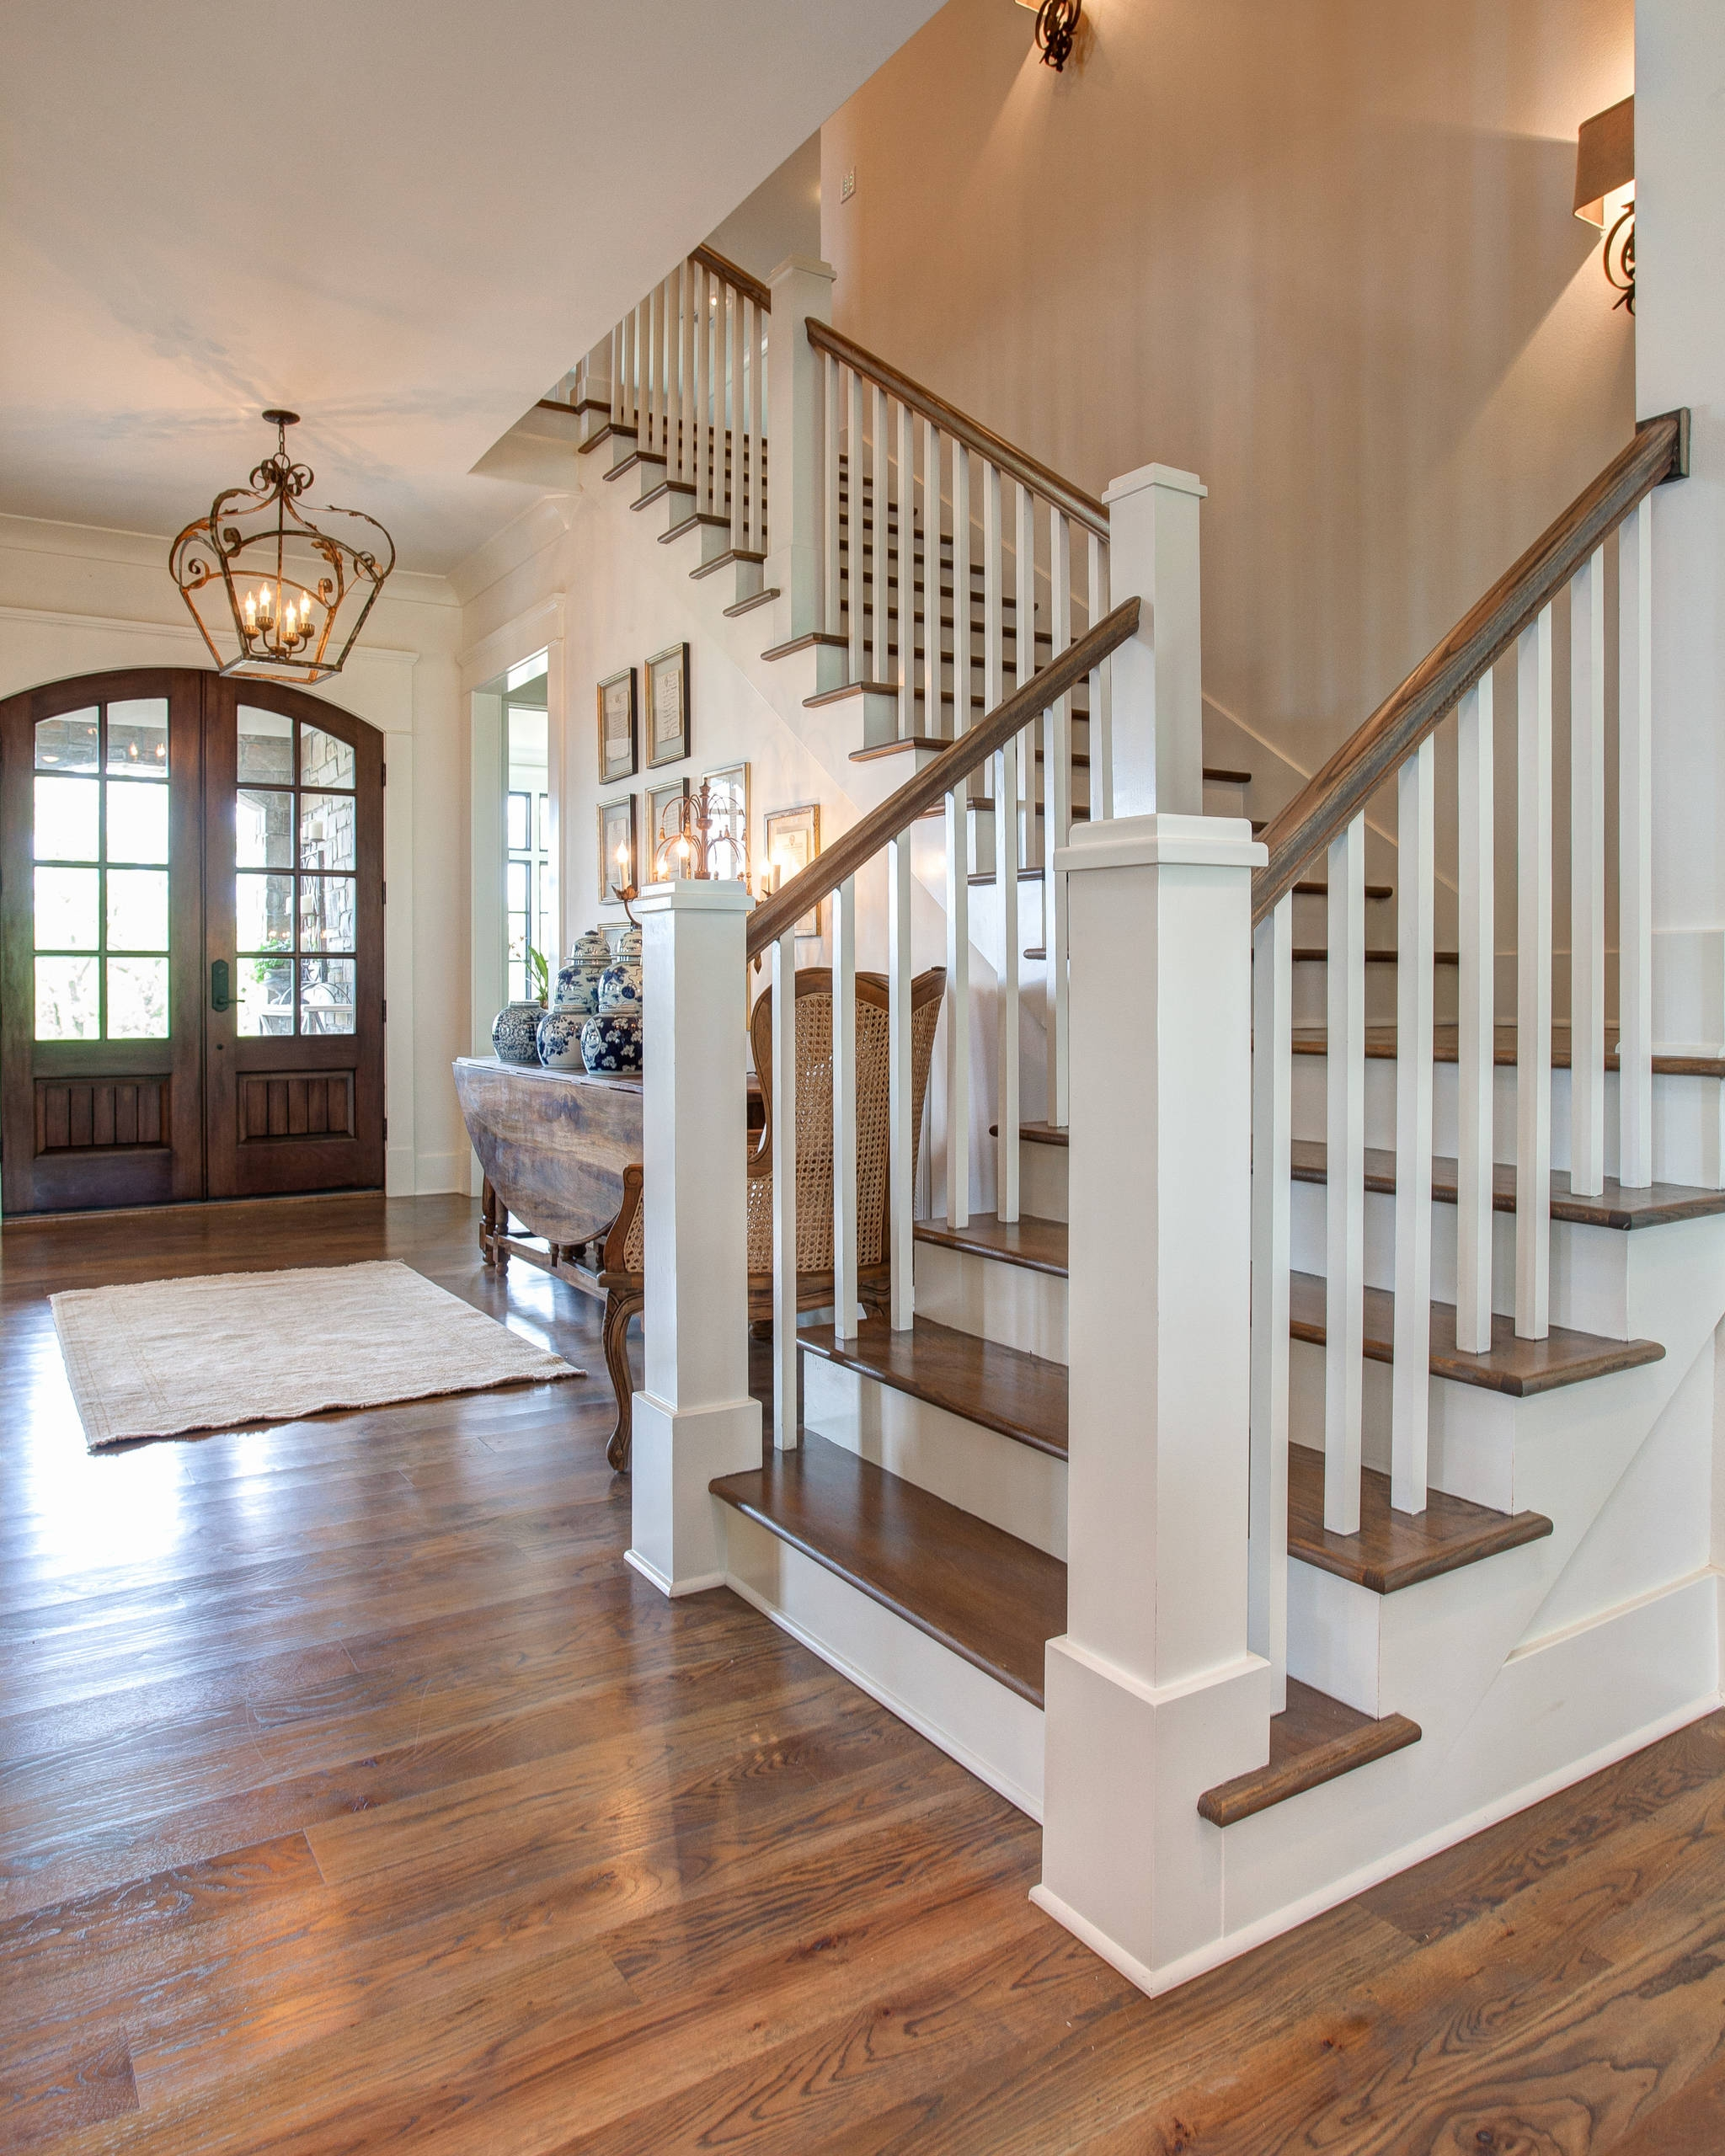 75 Beautiful Wood Stair Railing Pictures Ideas Houzz | Designer Handrails For Stairs | Wood | Wrought Iron Balusters | Railing Ideas | Interior | Stair Parts